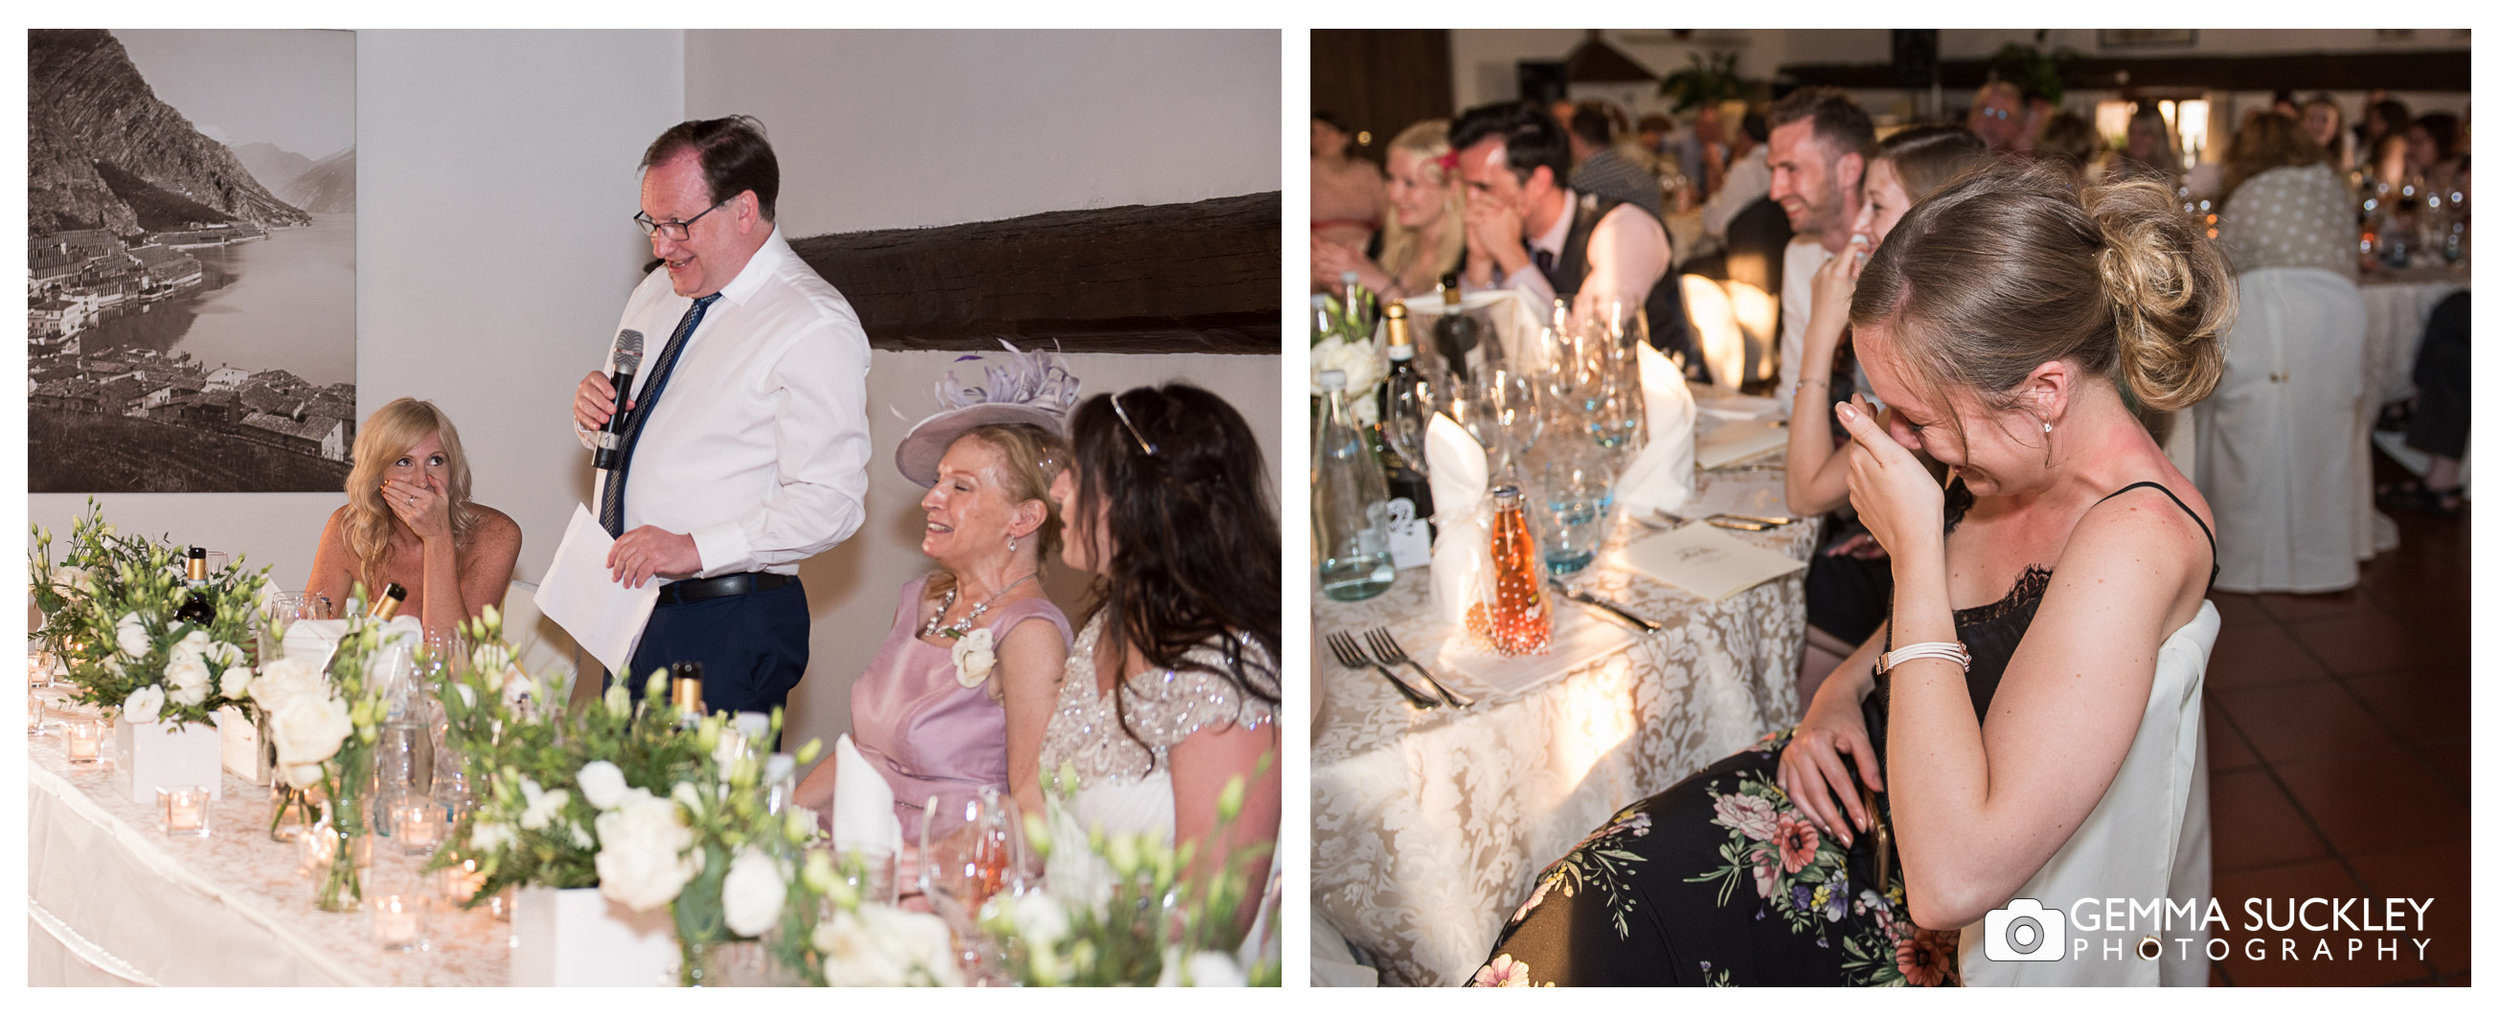 guests look embarrassed during wedding speeches